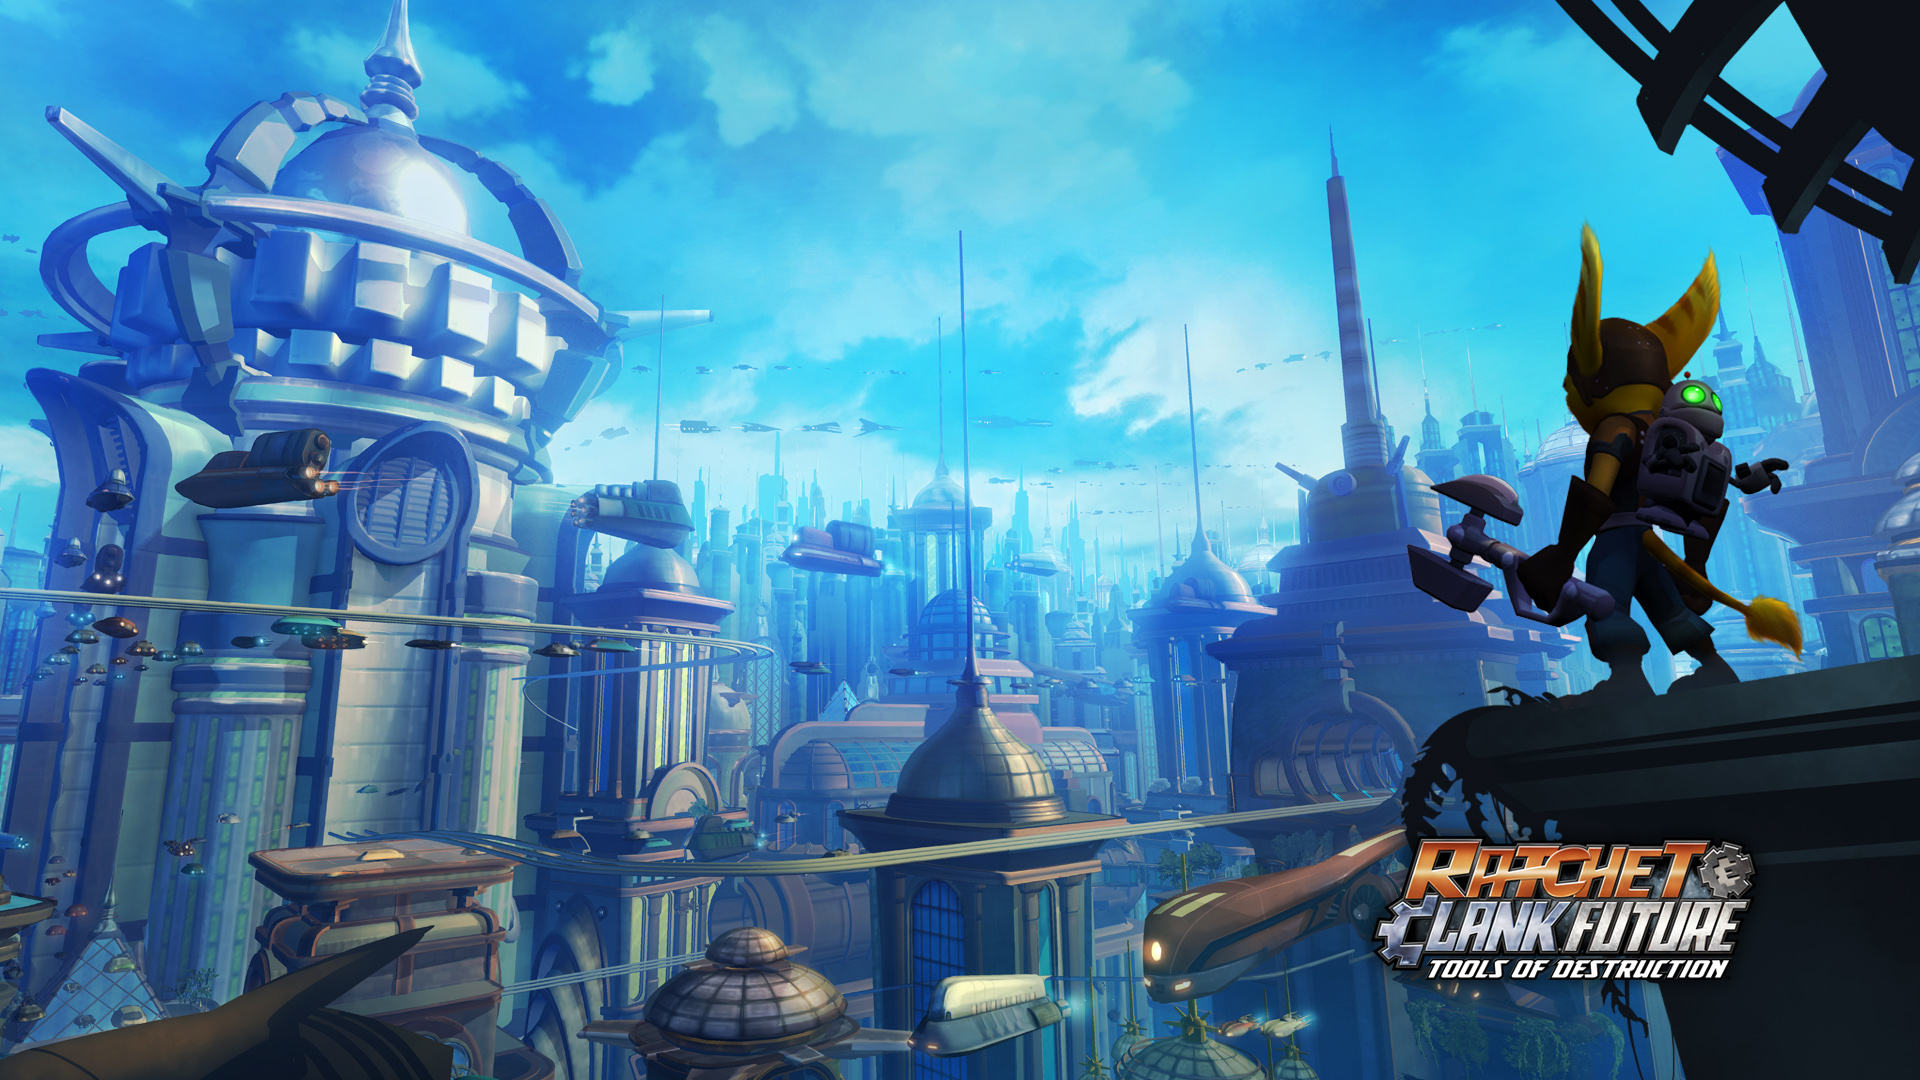 Ratchet and clank future tools of destruction wallpapers